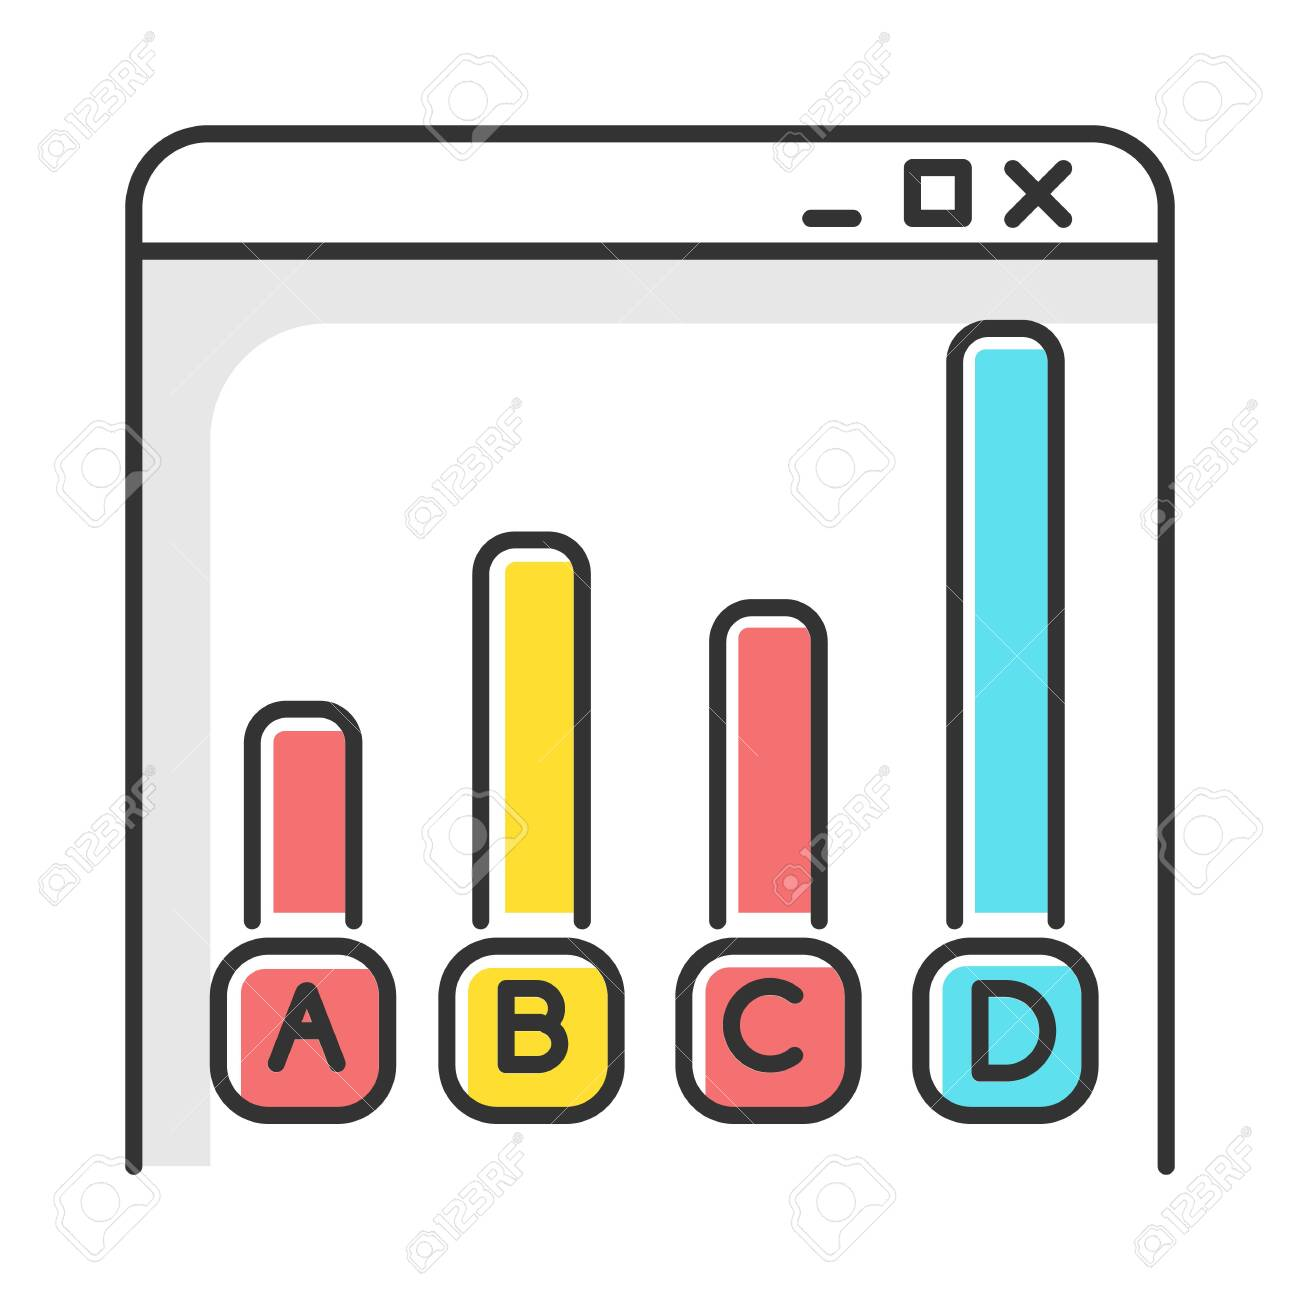 Online survey color icon. Statistics analysis. Web chart. Internet graph. Histogram bar increase. Info collection. Data research. Digital questionnaire. Diagram. Isolated vector illustration - 134459482